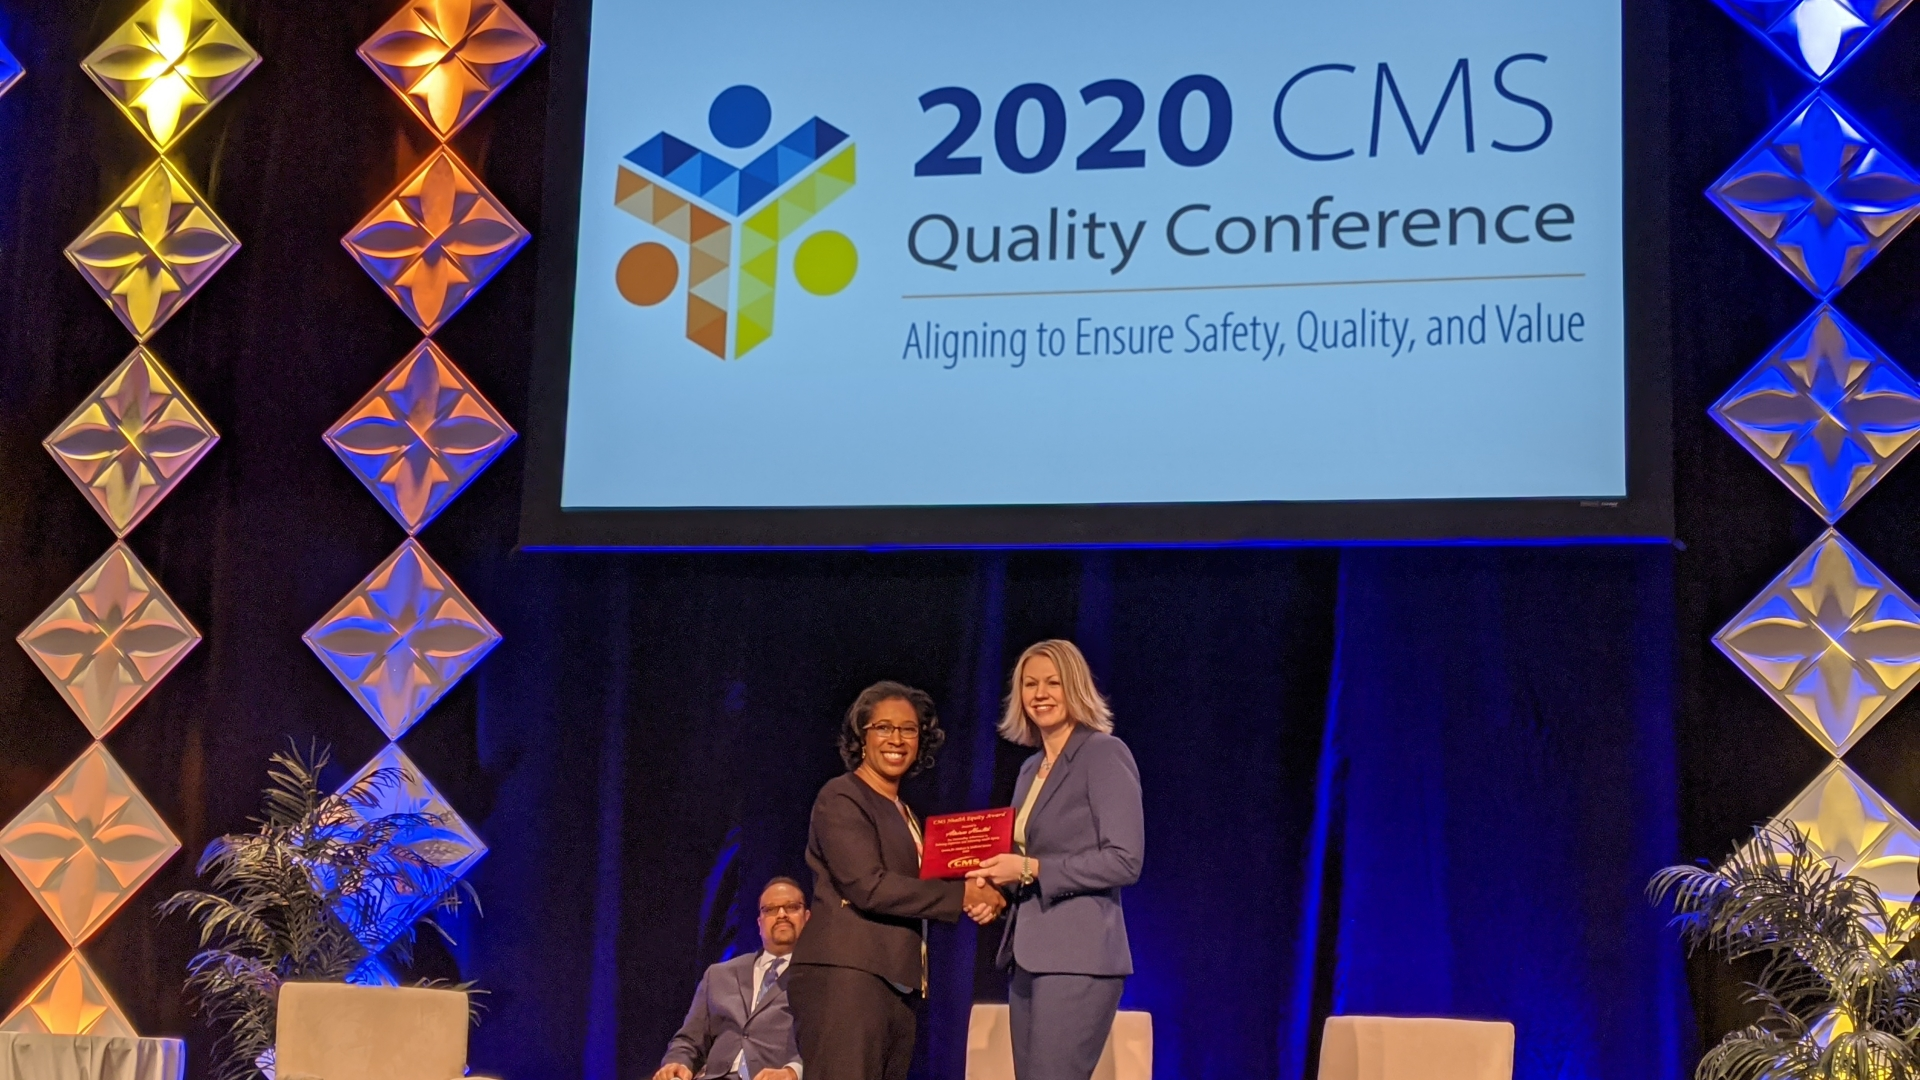 Atrium Health was recognized today by the Centers for Medicare & Medicaid Services (CMS) as a 2020 CMS Health Equity Award recipient for its dedication to health equity by reducing disparities, enabling communities to achieve the highest level of health.